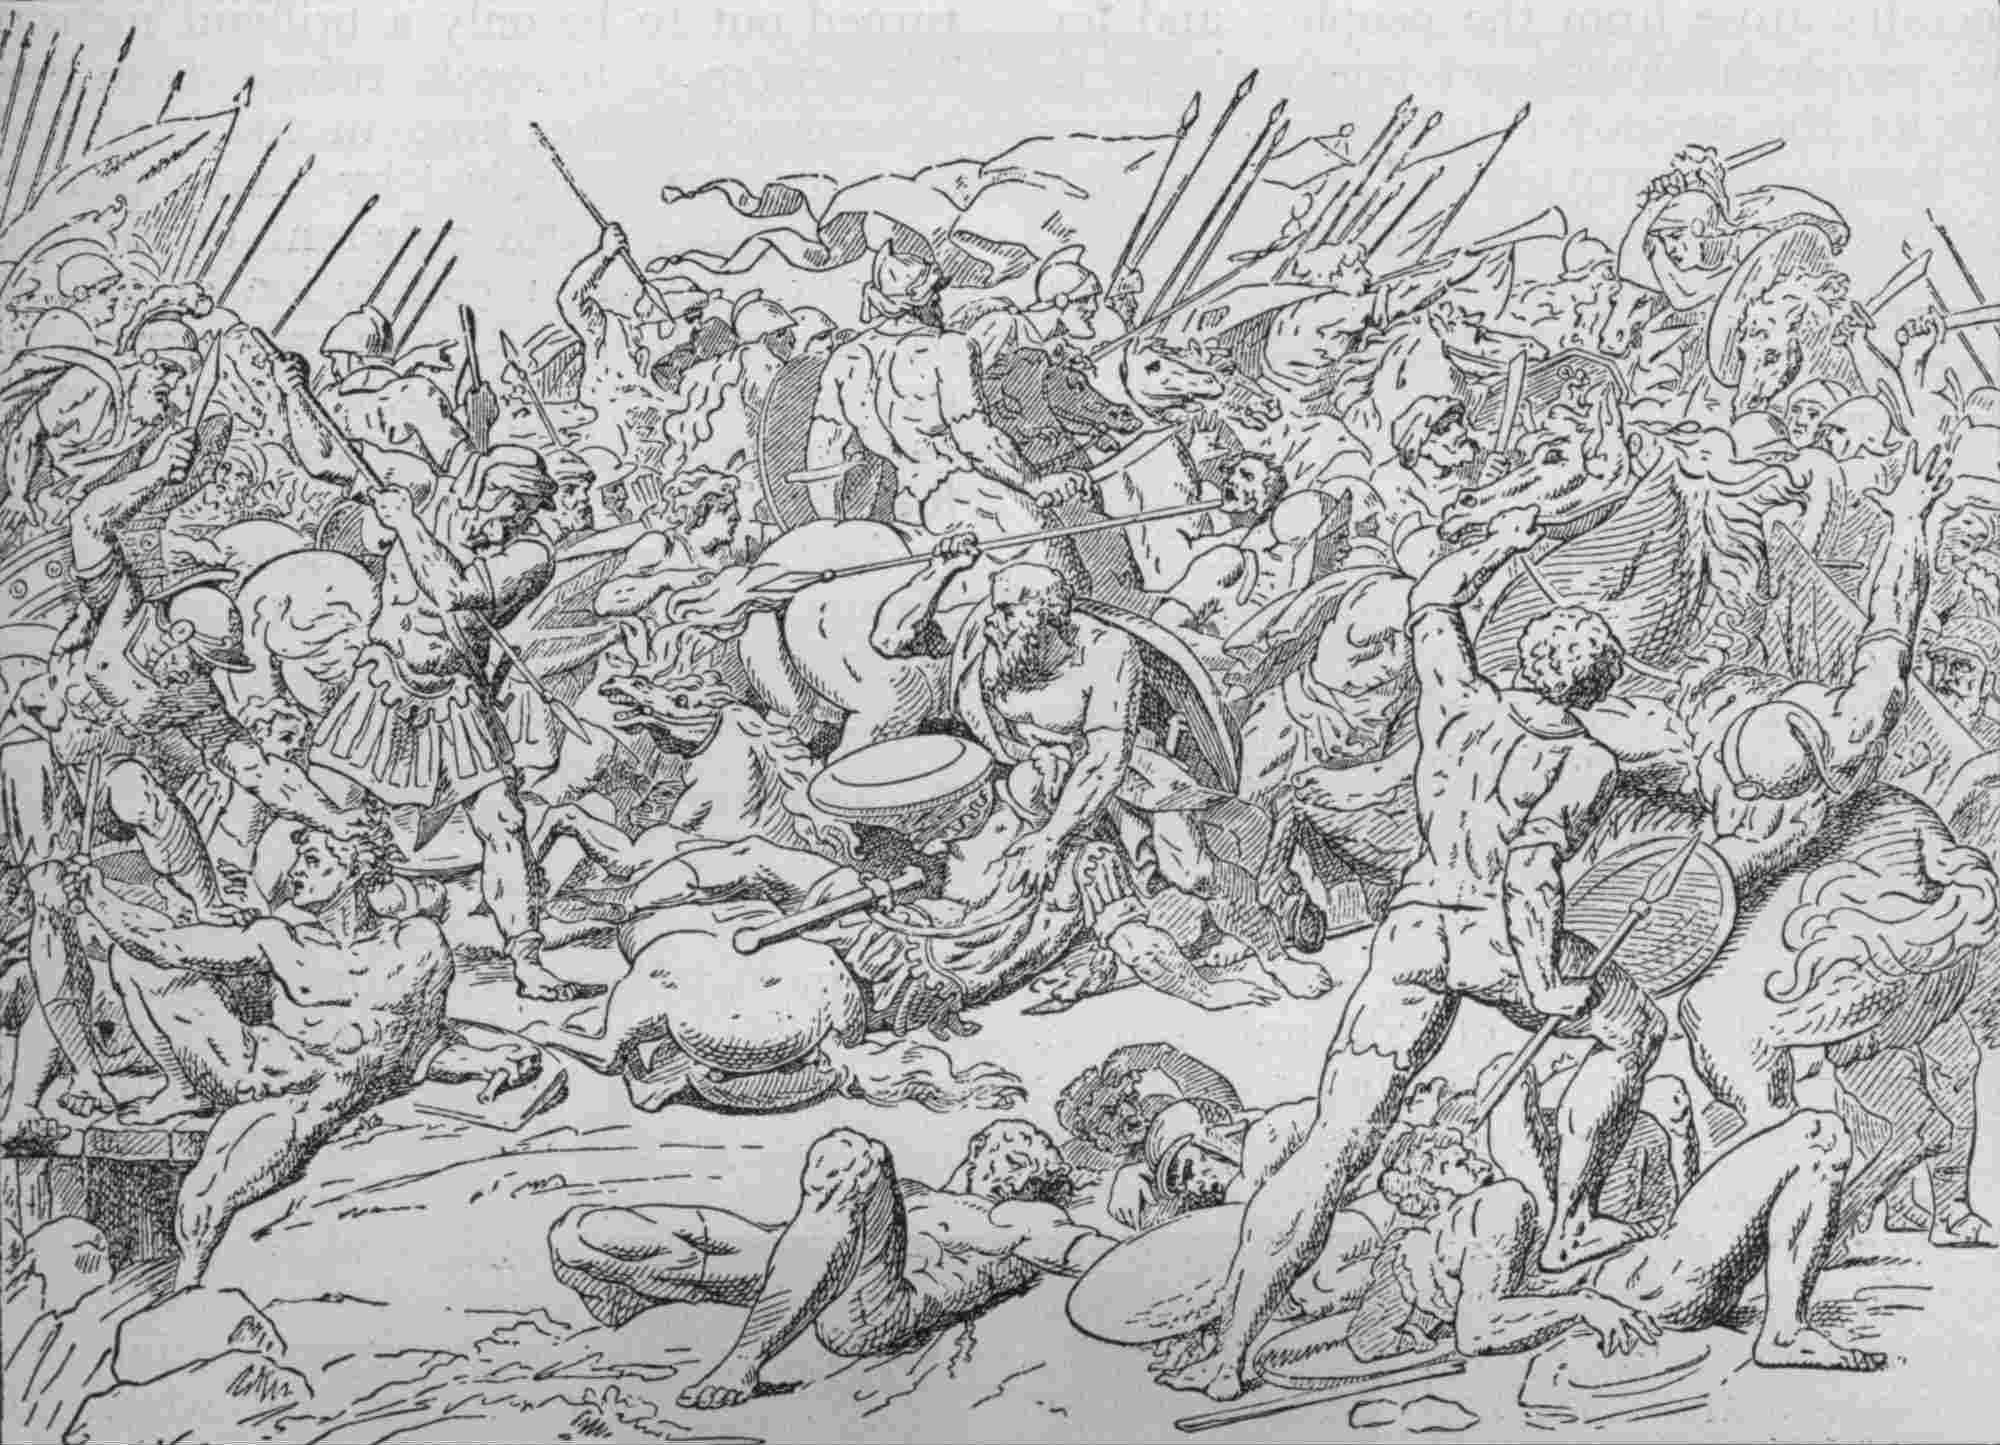 Socrates at the Battle of Potidaea